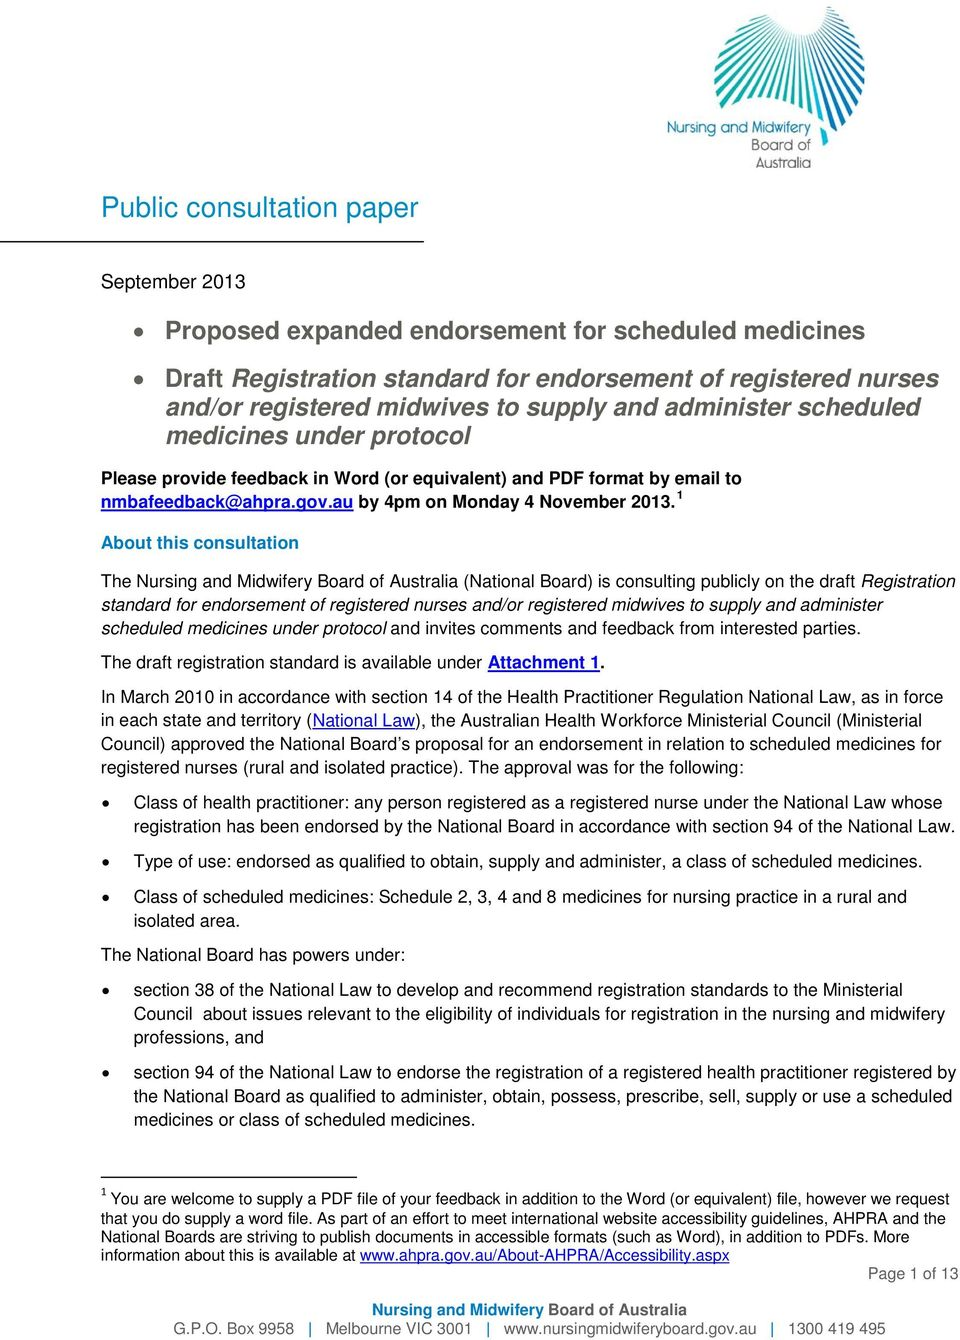 1 About this consultation The (National Board) is consulting publicly on the draft Registration standard for endorsement of registered nurses and/or registered midwives to supply and administer